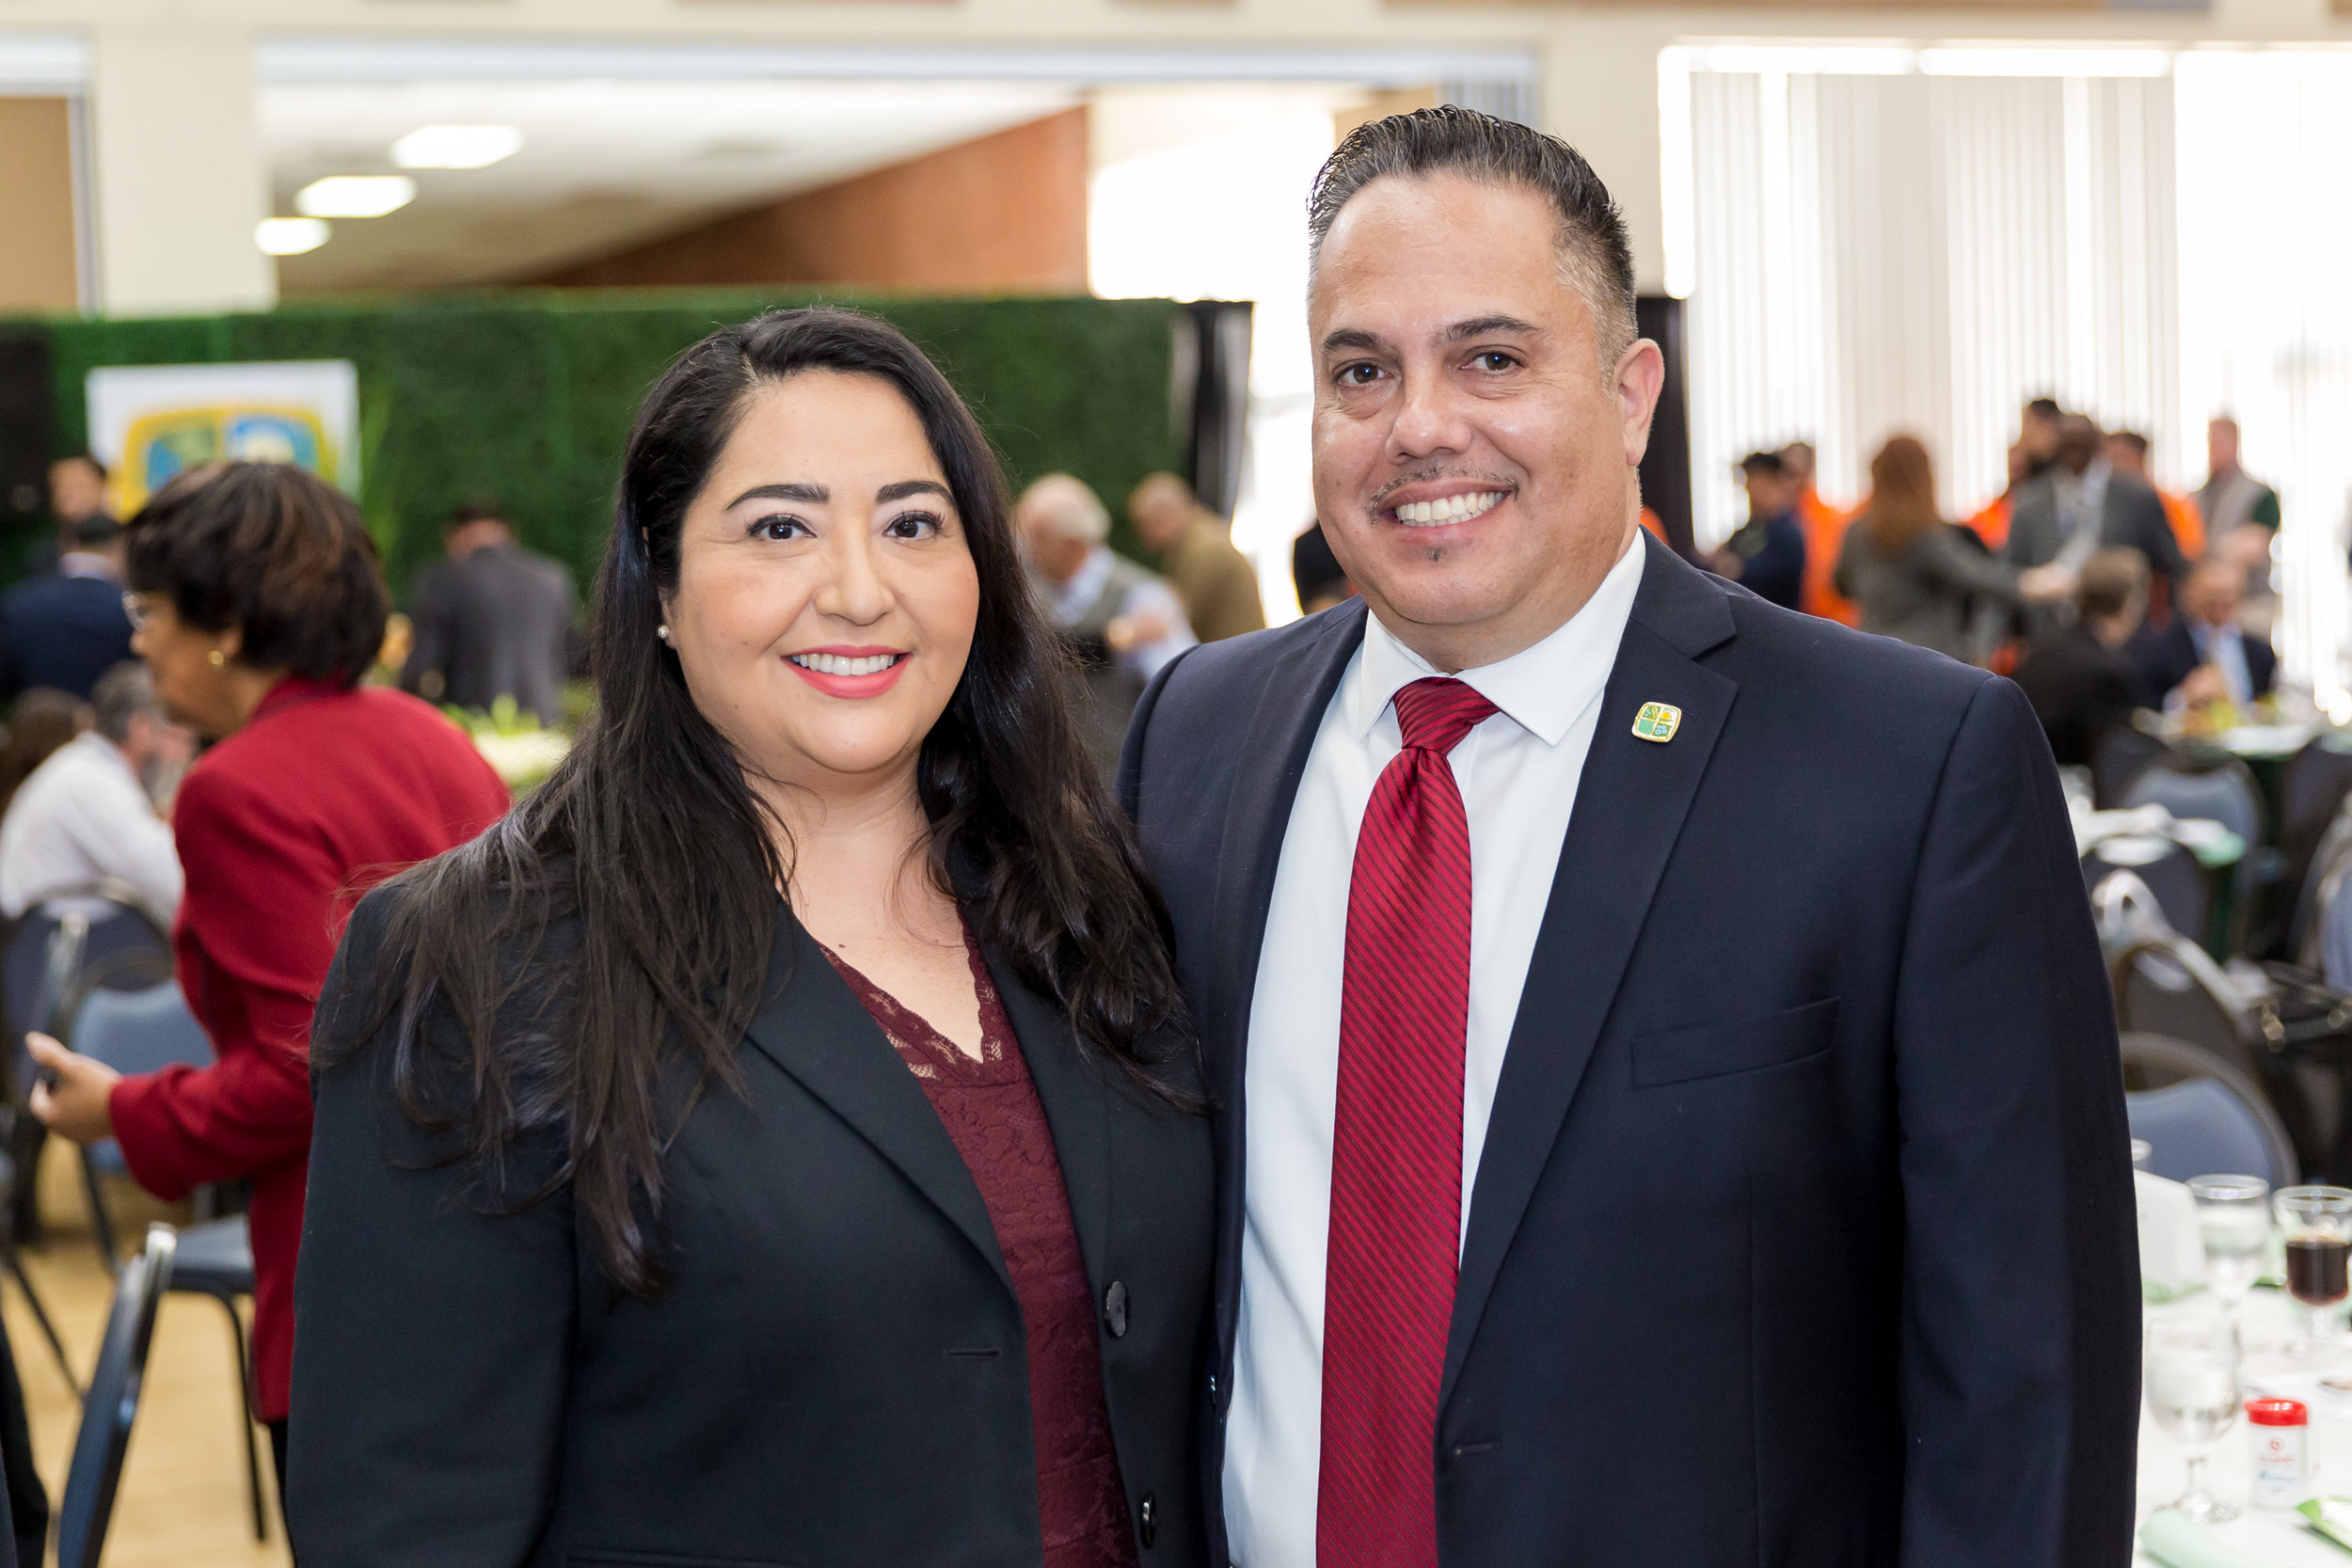 Mayor Vargas and Denise Campos Chamber Board of Directors